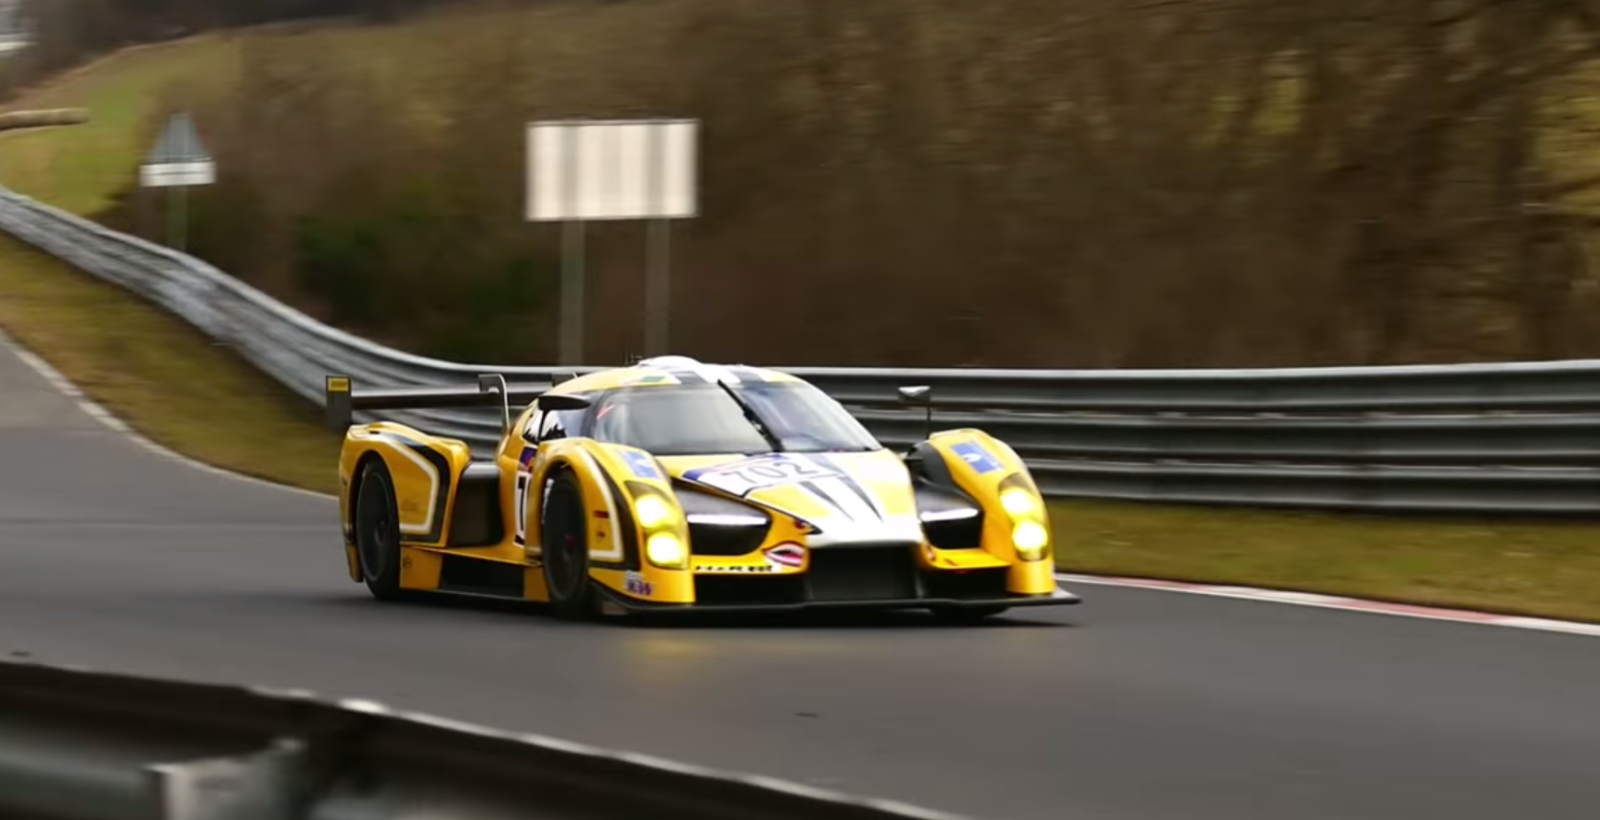 Scg 003 Is Too Loud For The N 252 Rburgring